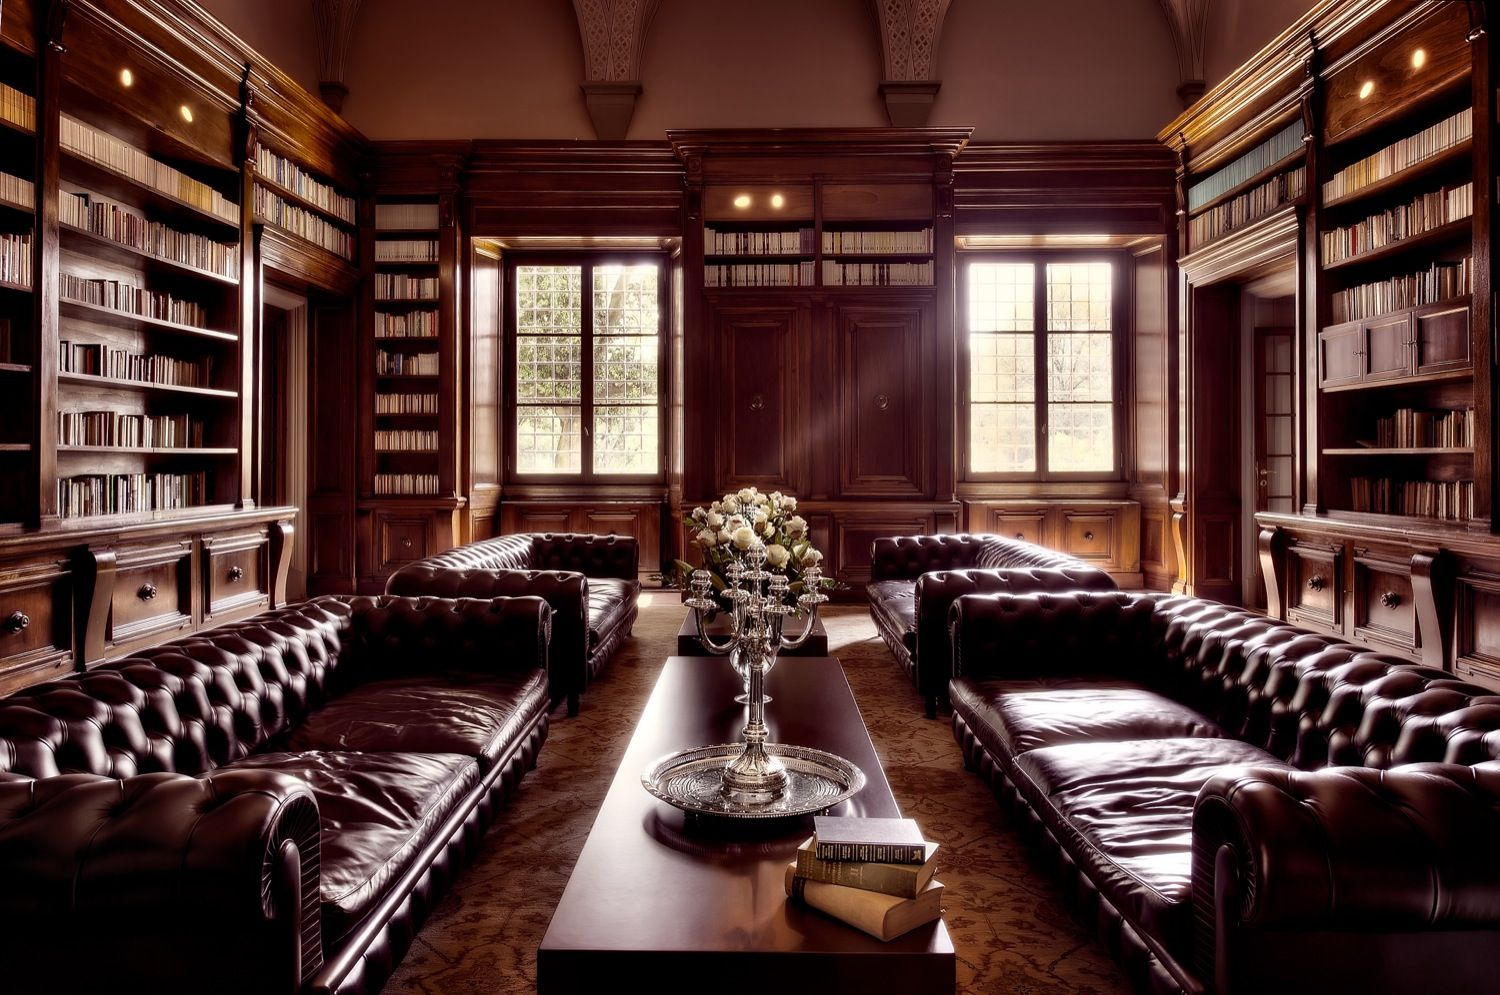 10 best images about library on pinterest | home library design